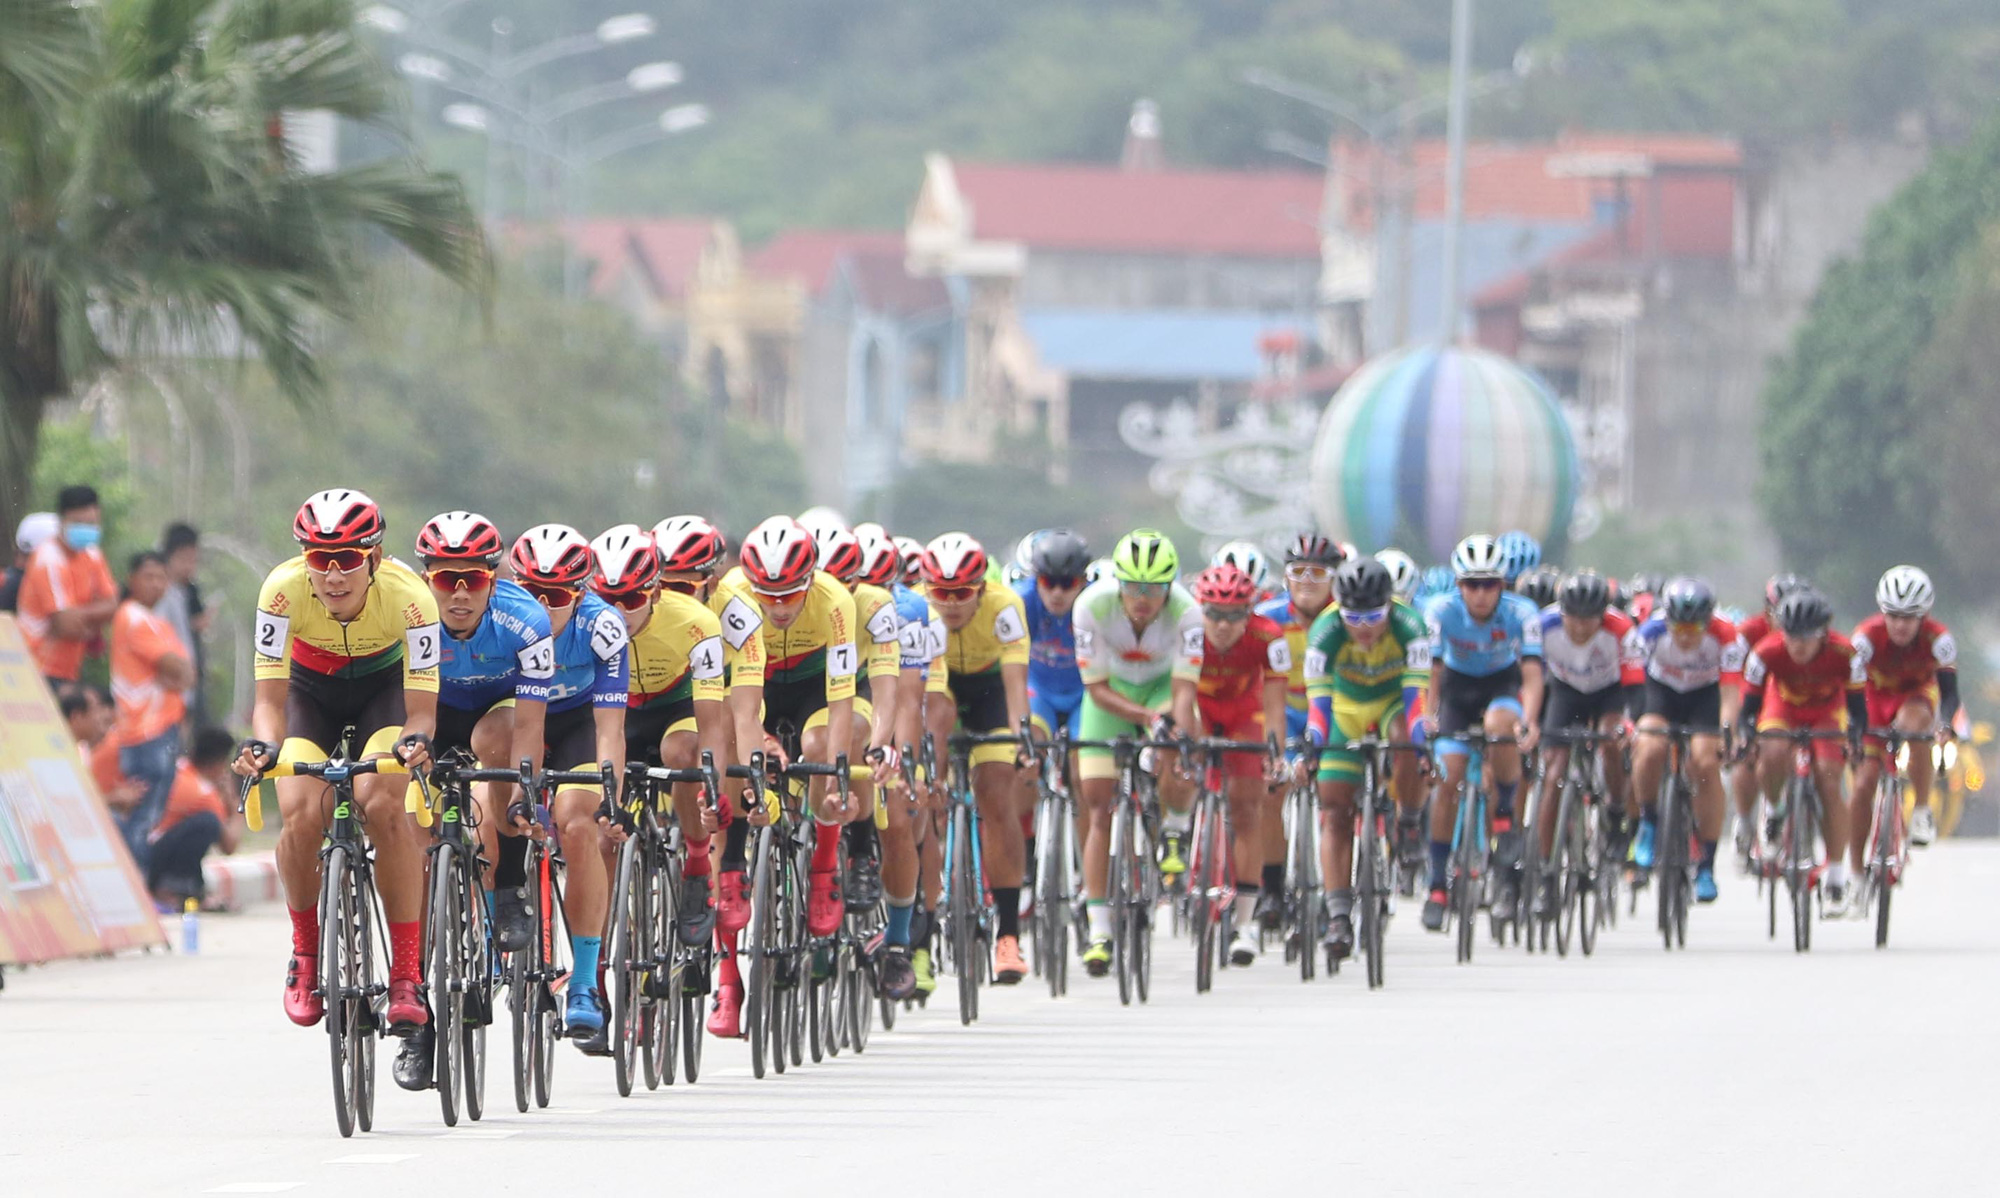 Cyclists race in the third stage of the HTV Cup national cycling tournament in Lang Son Province, Vietnam, April 8, 2021. Photo: T.P. / Tuoi Tre